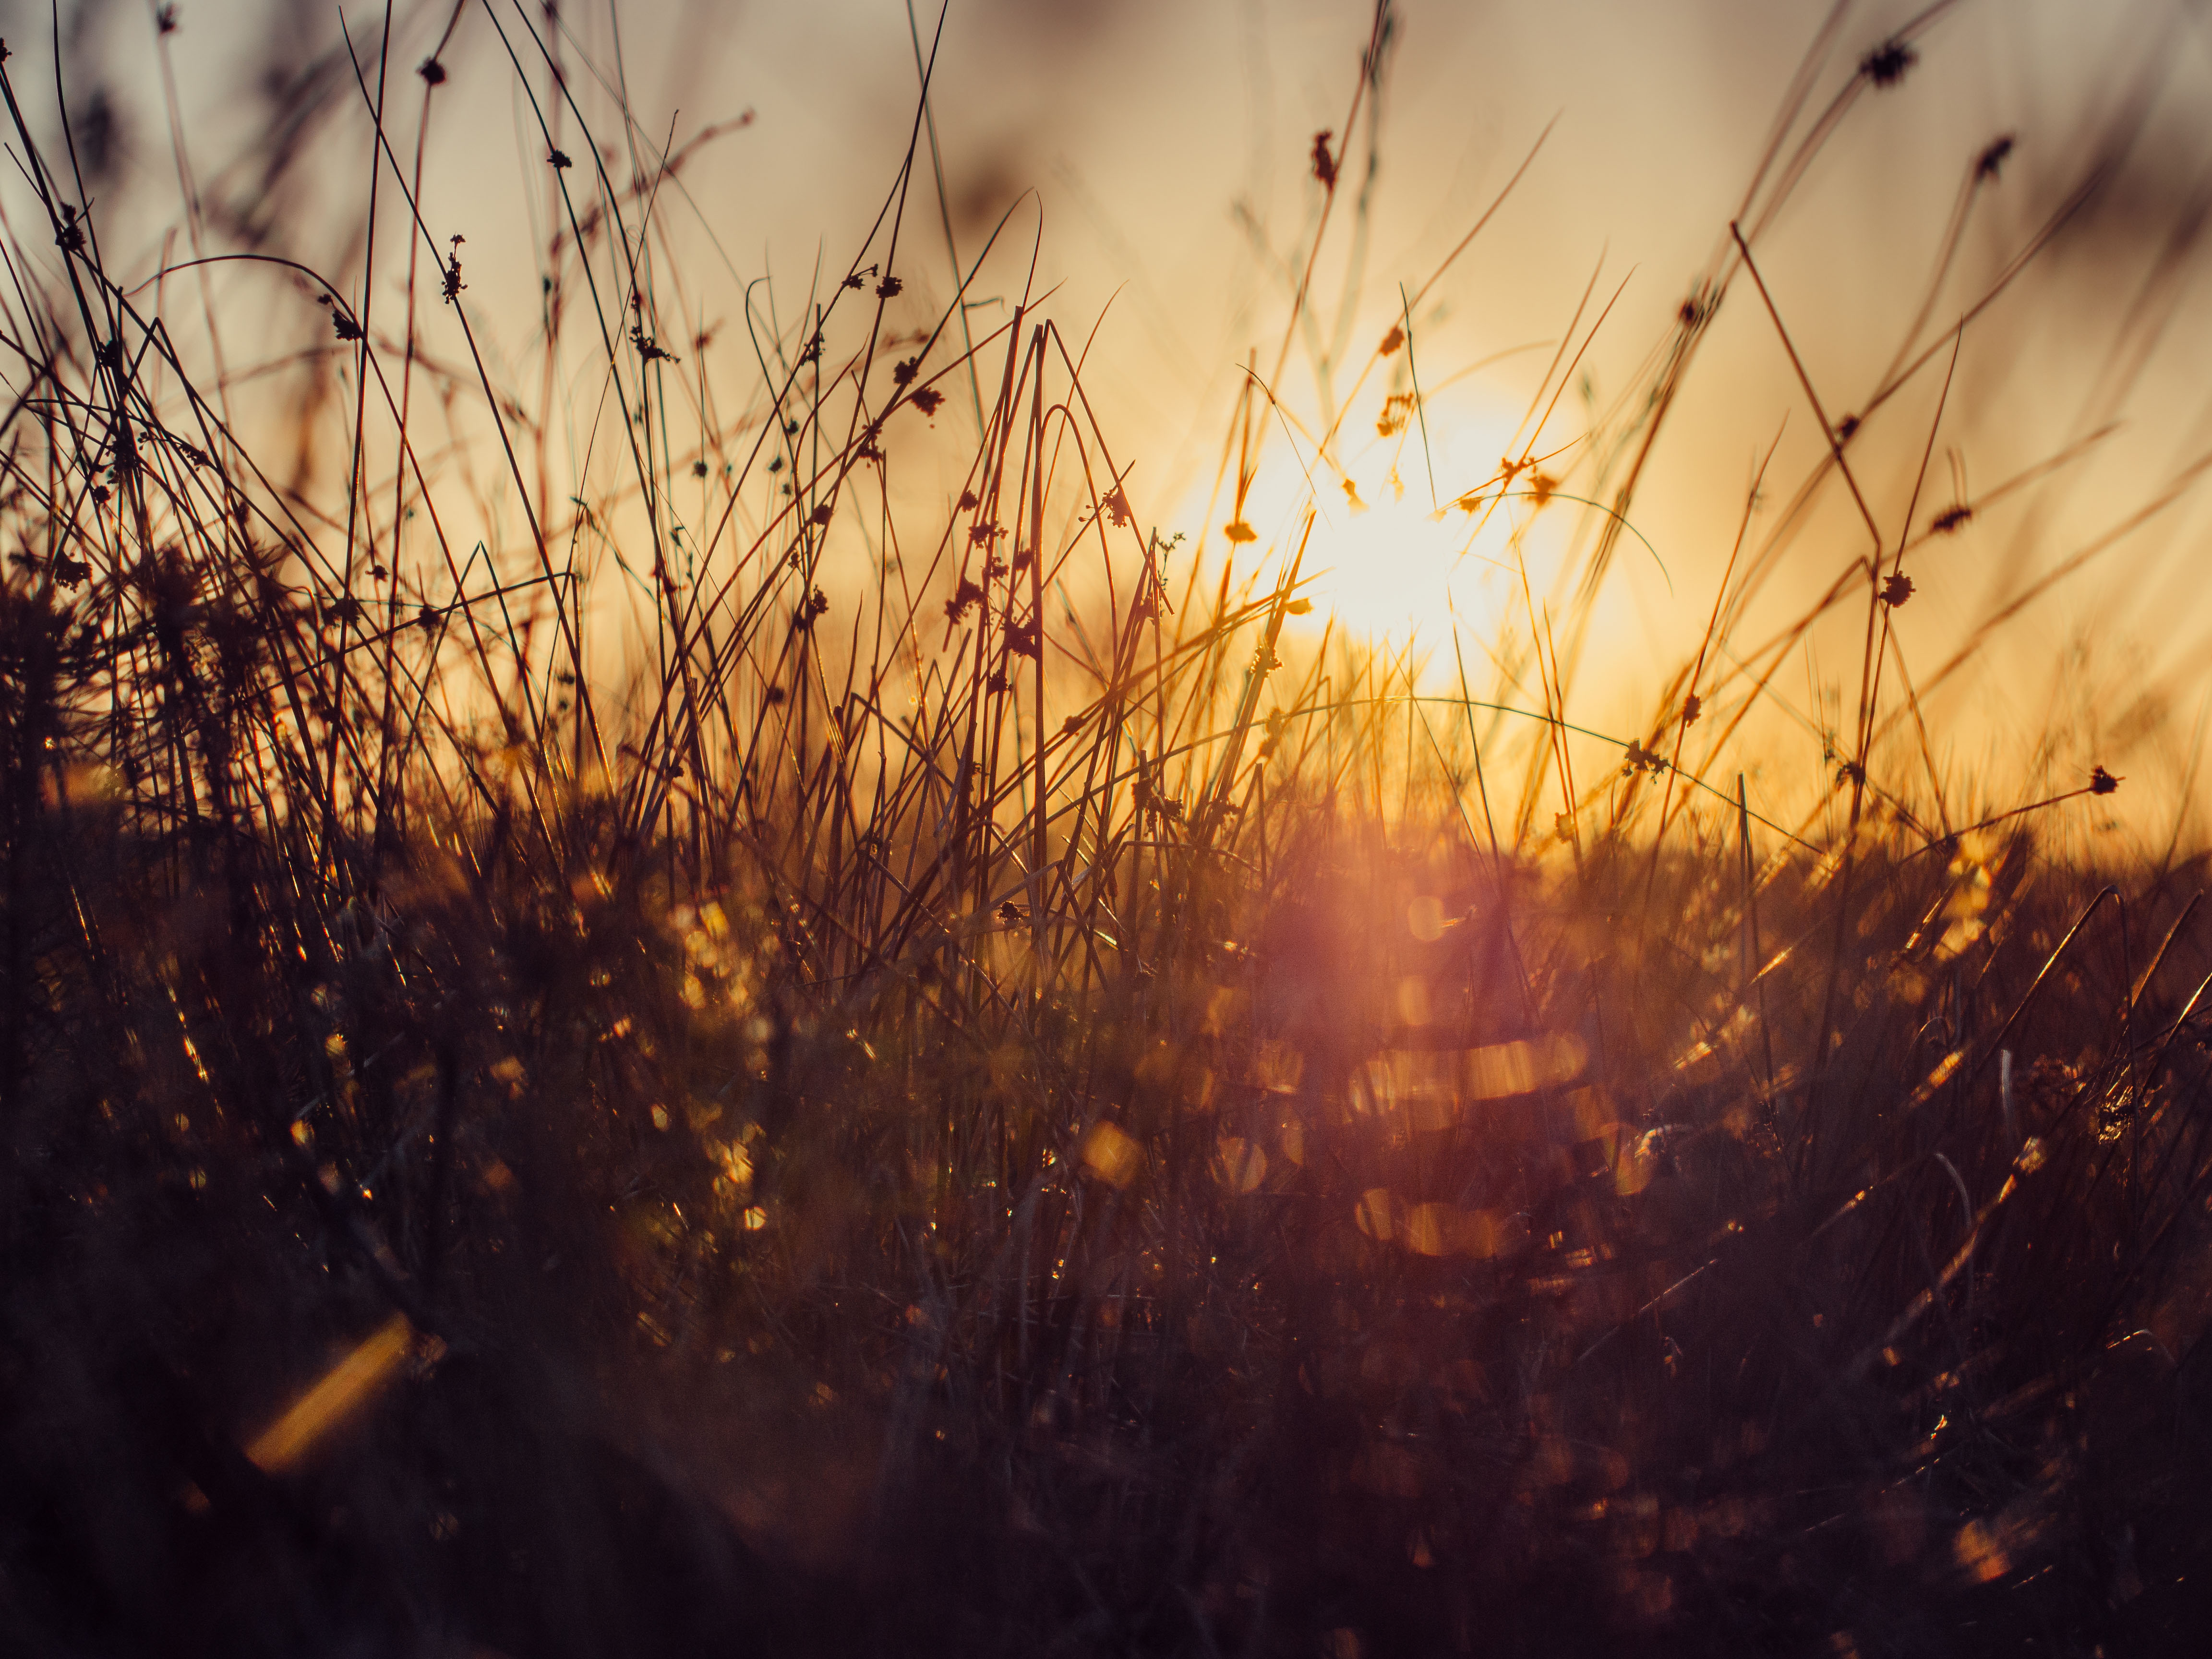 Sunset in the countryside, outdoors, nature, morning, evening, yellow, vegetation, countryside, sun